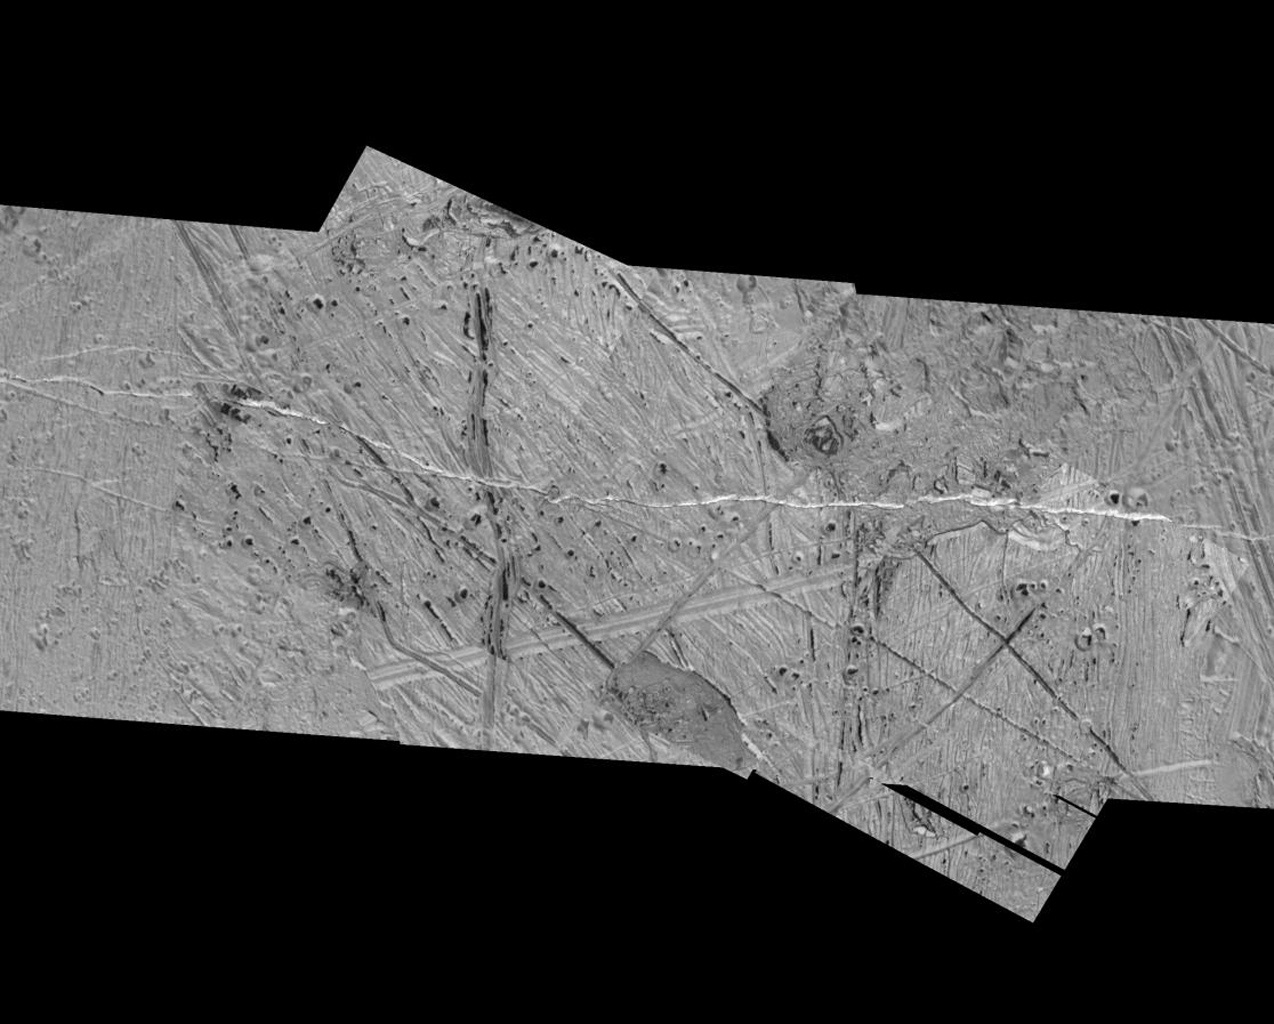 This mosaic of an area just southeast of the Tyre multi-ring structure on Jupiter's moon Europa combines two sets of images taken by NASA's Galileo spacecraft. Features in this area include pits, plains, and regions of chaotic terrain.